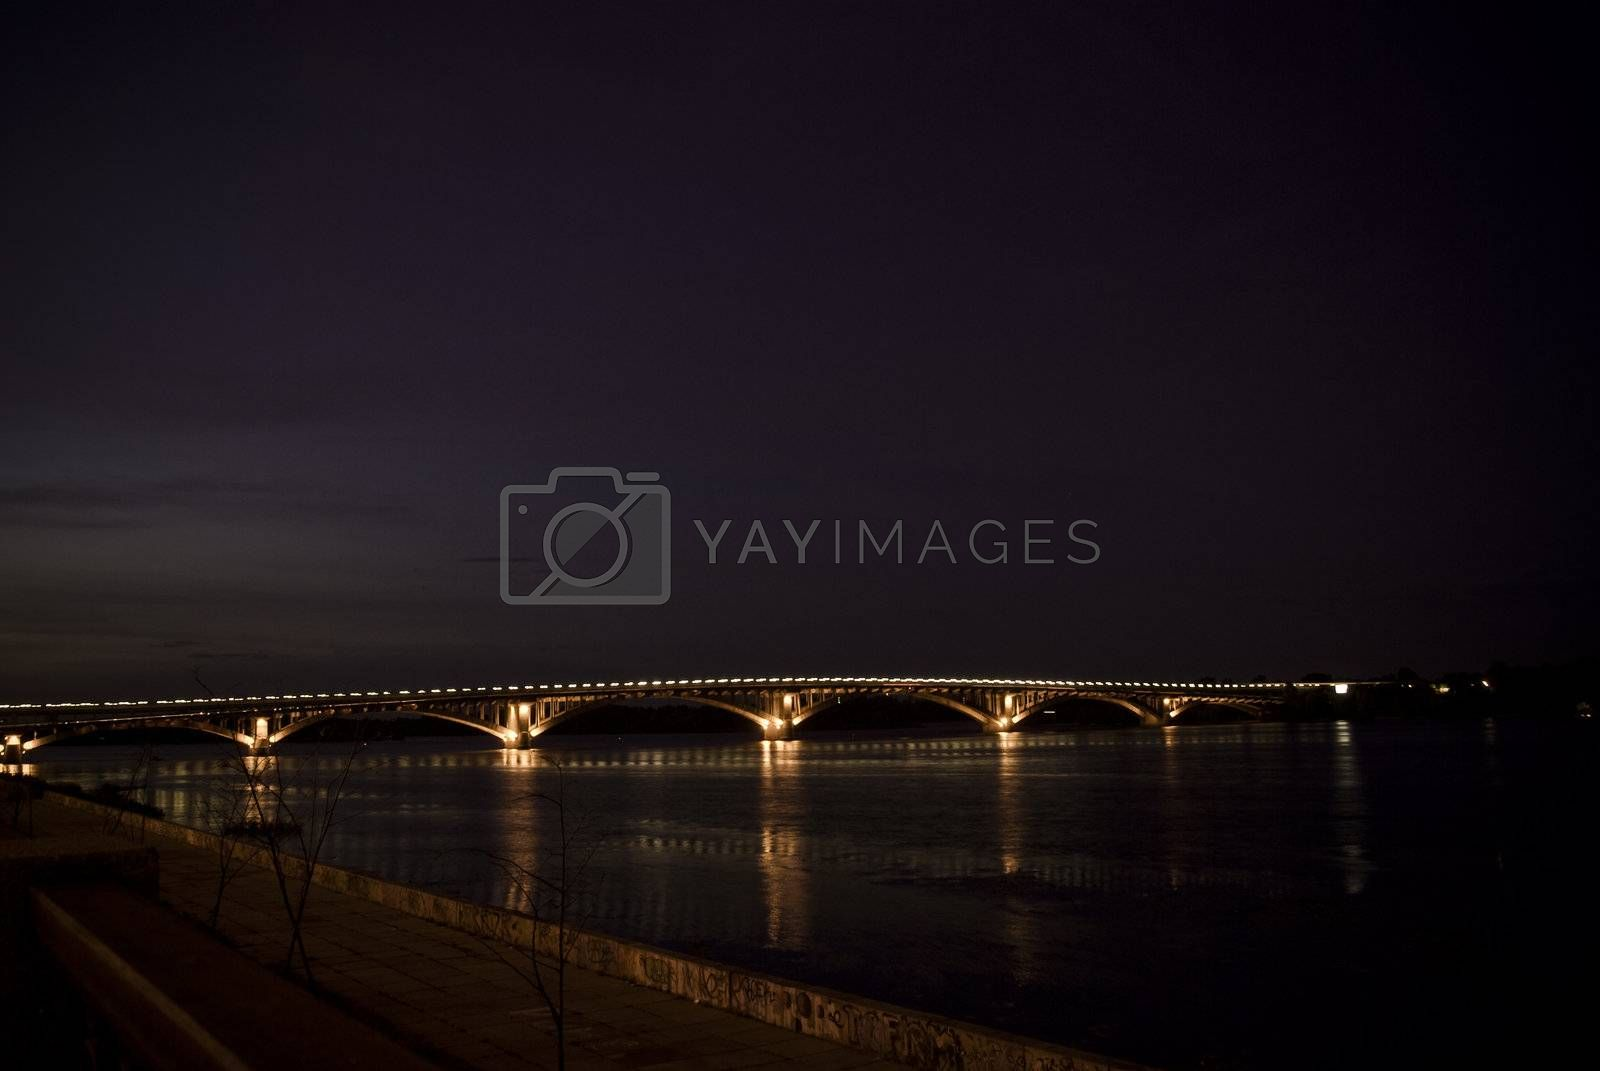 Royalty free image of The city bridge at night all on fires by jincomplete